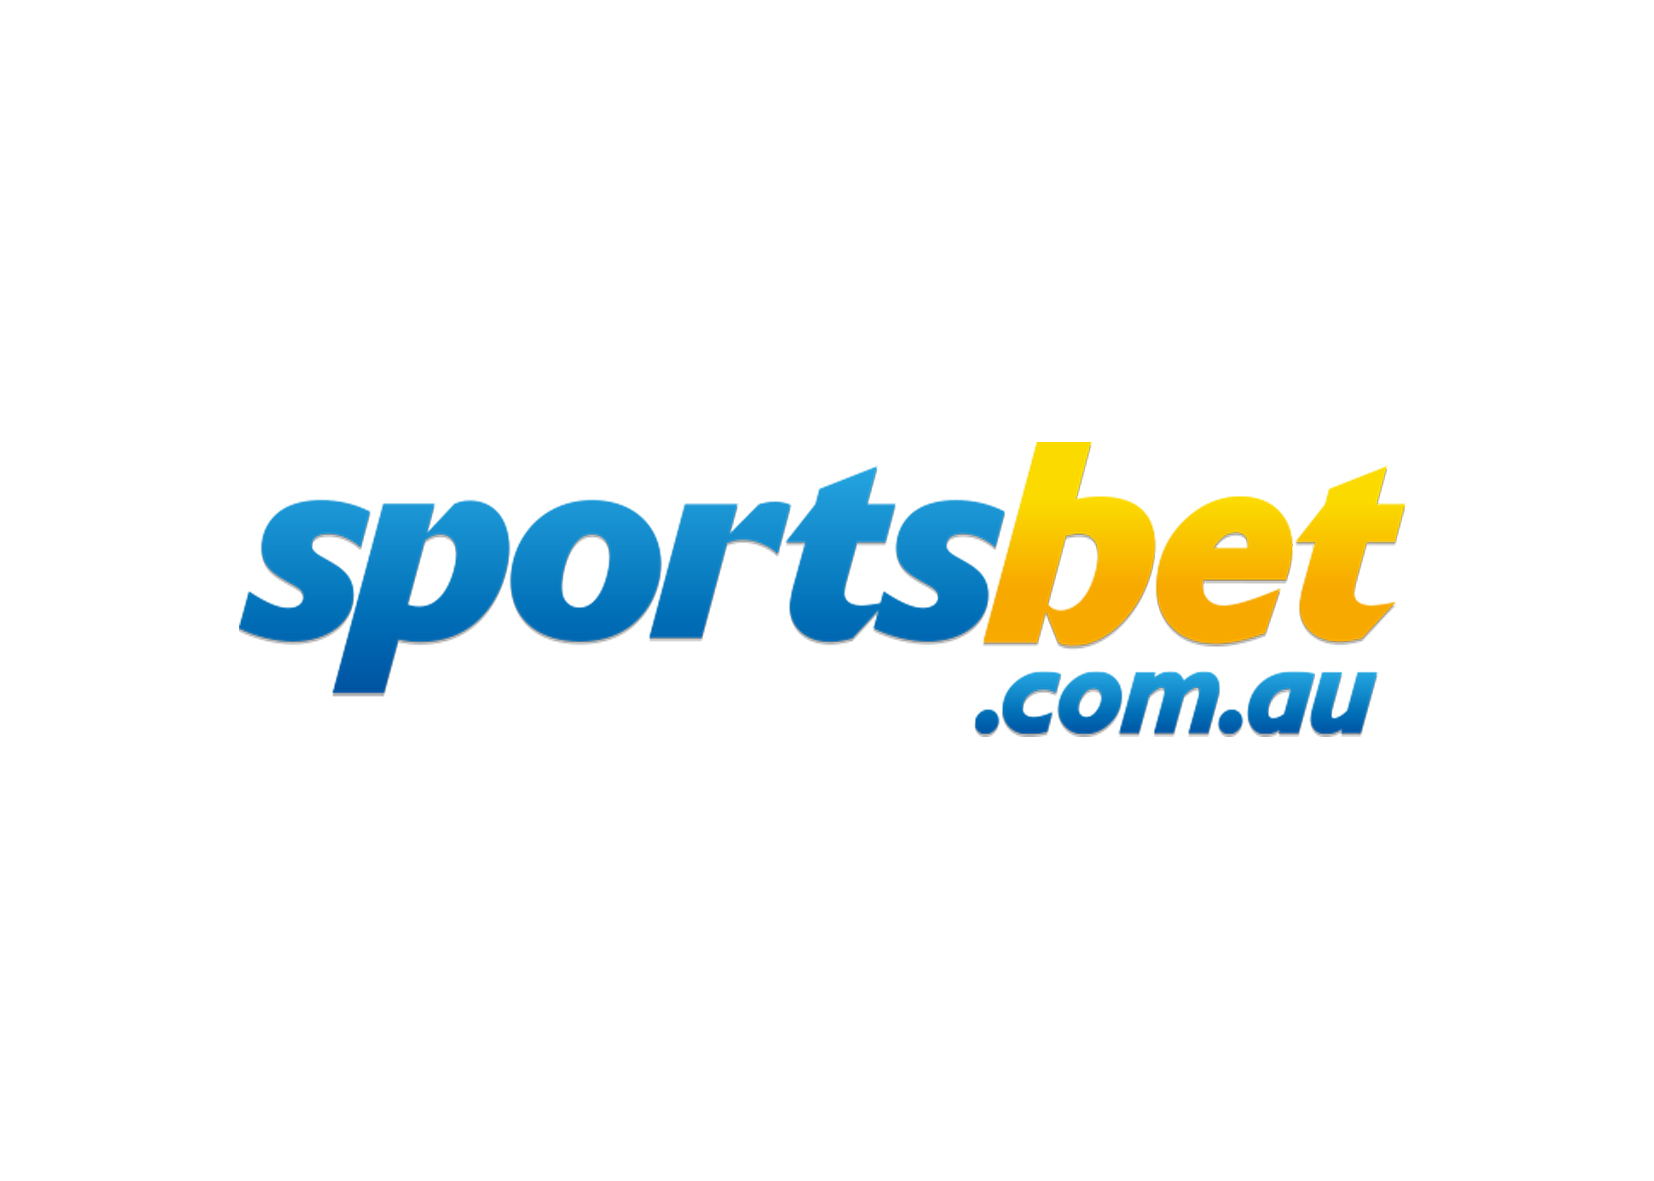 highway brands_0005_sportsbet.jpg